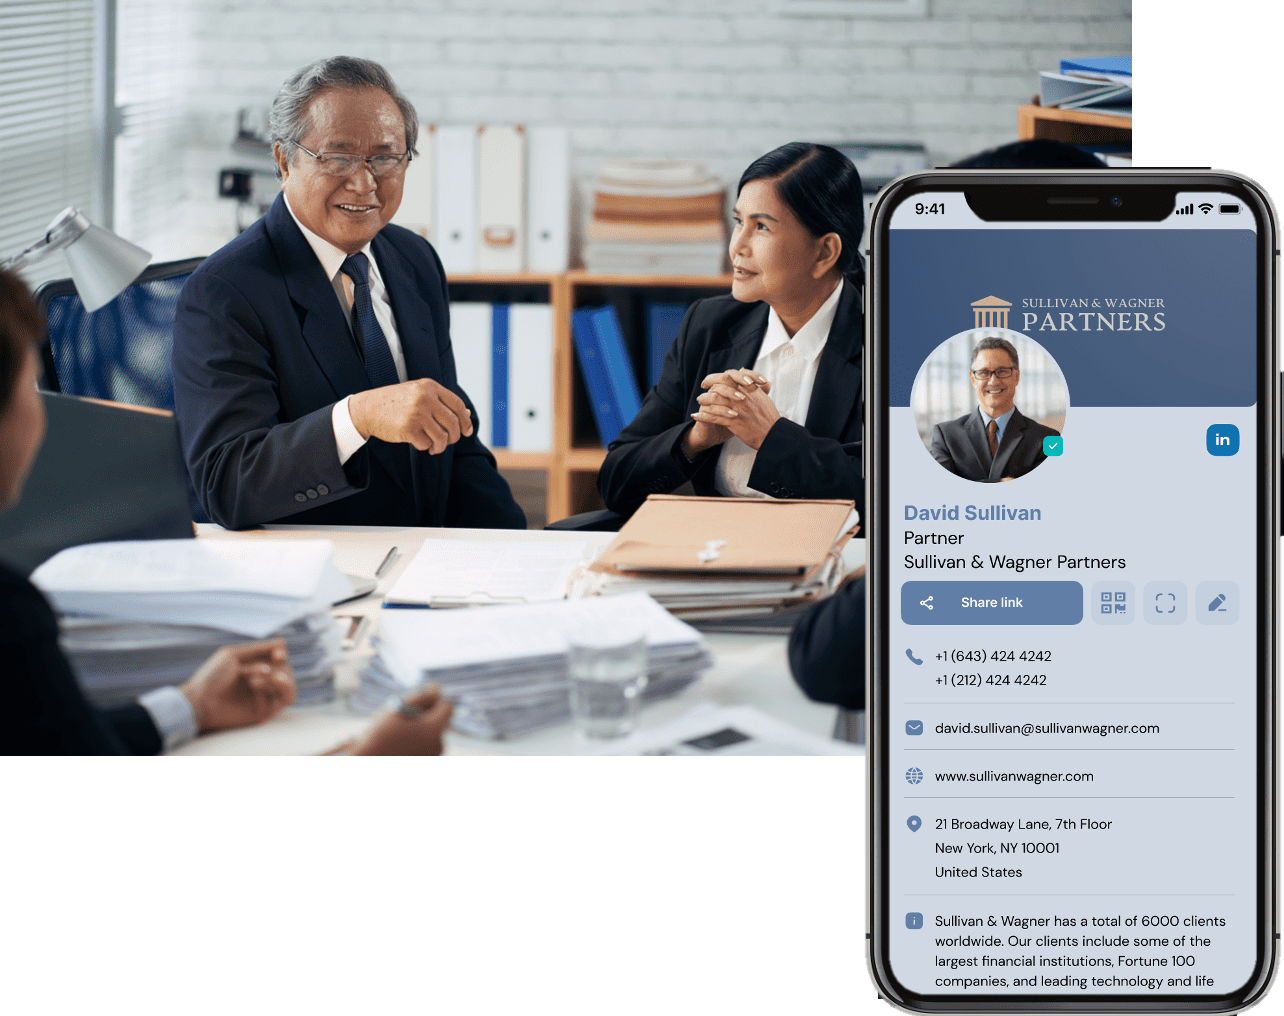 digital business cards to expand legal networking capabilities